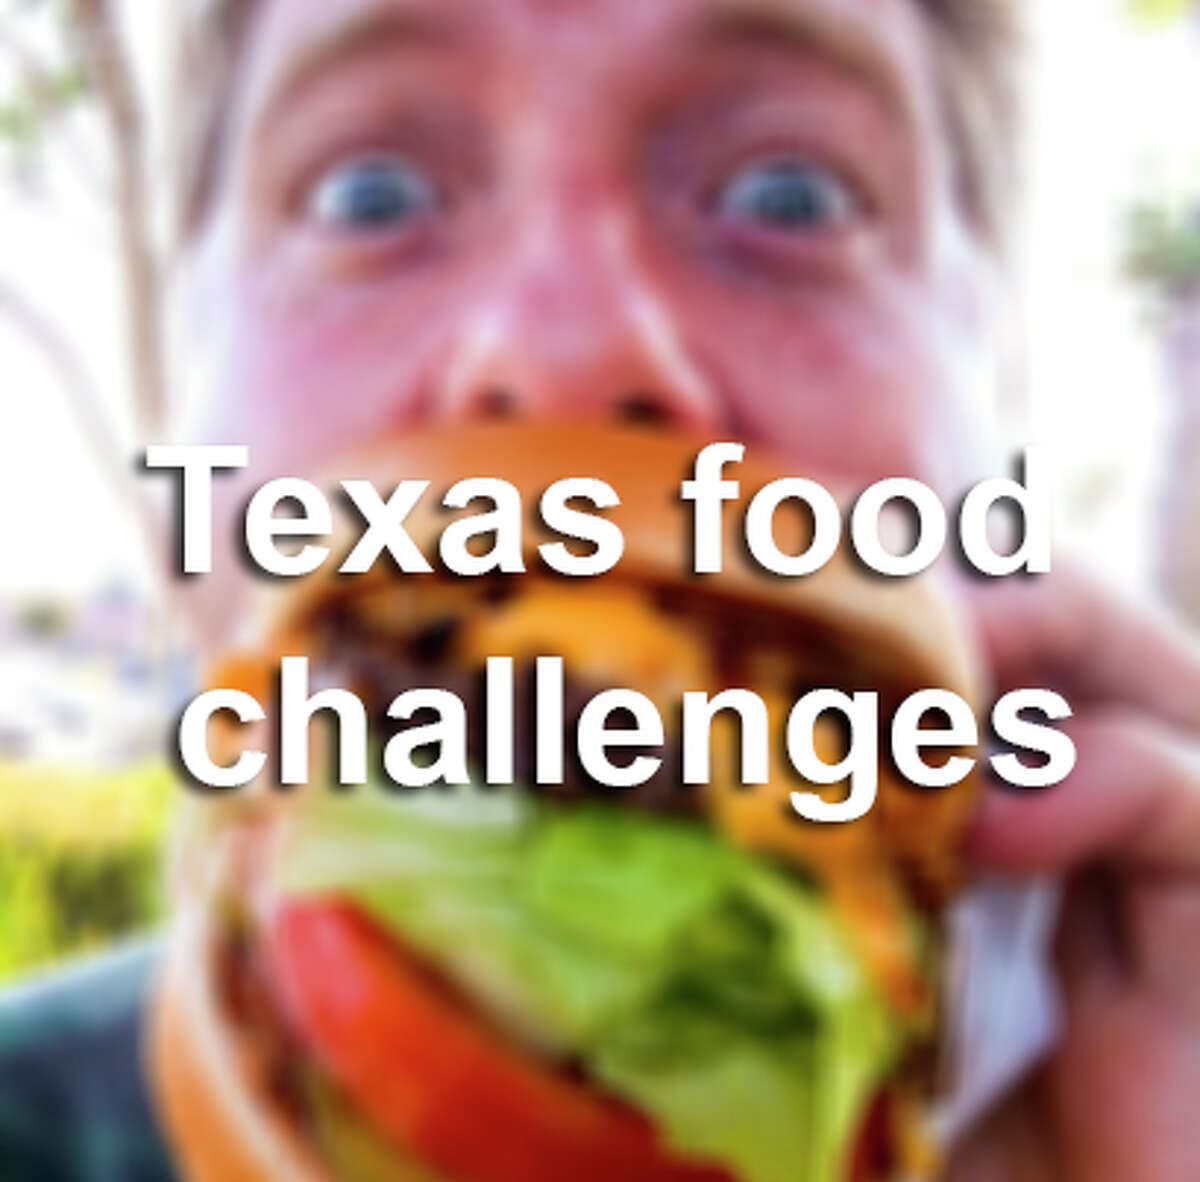 Texas food challenges